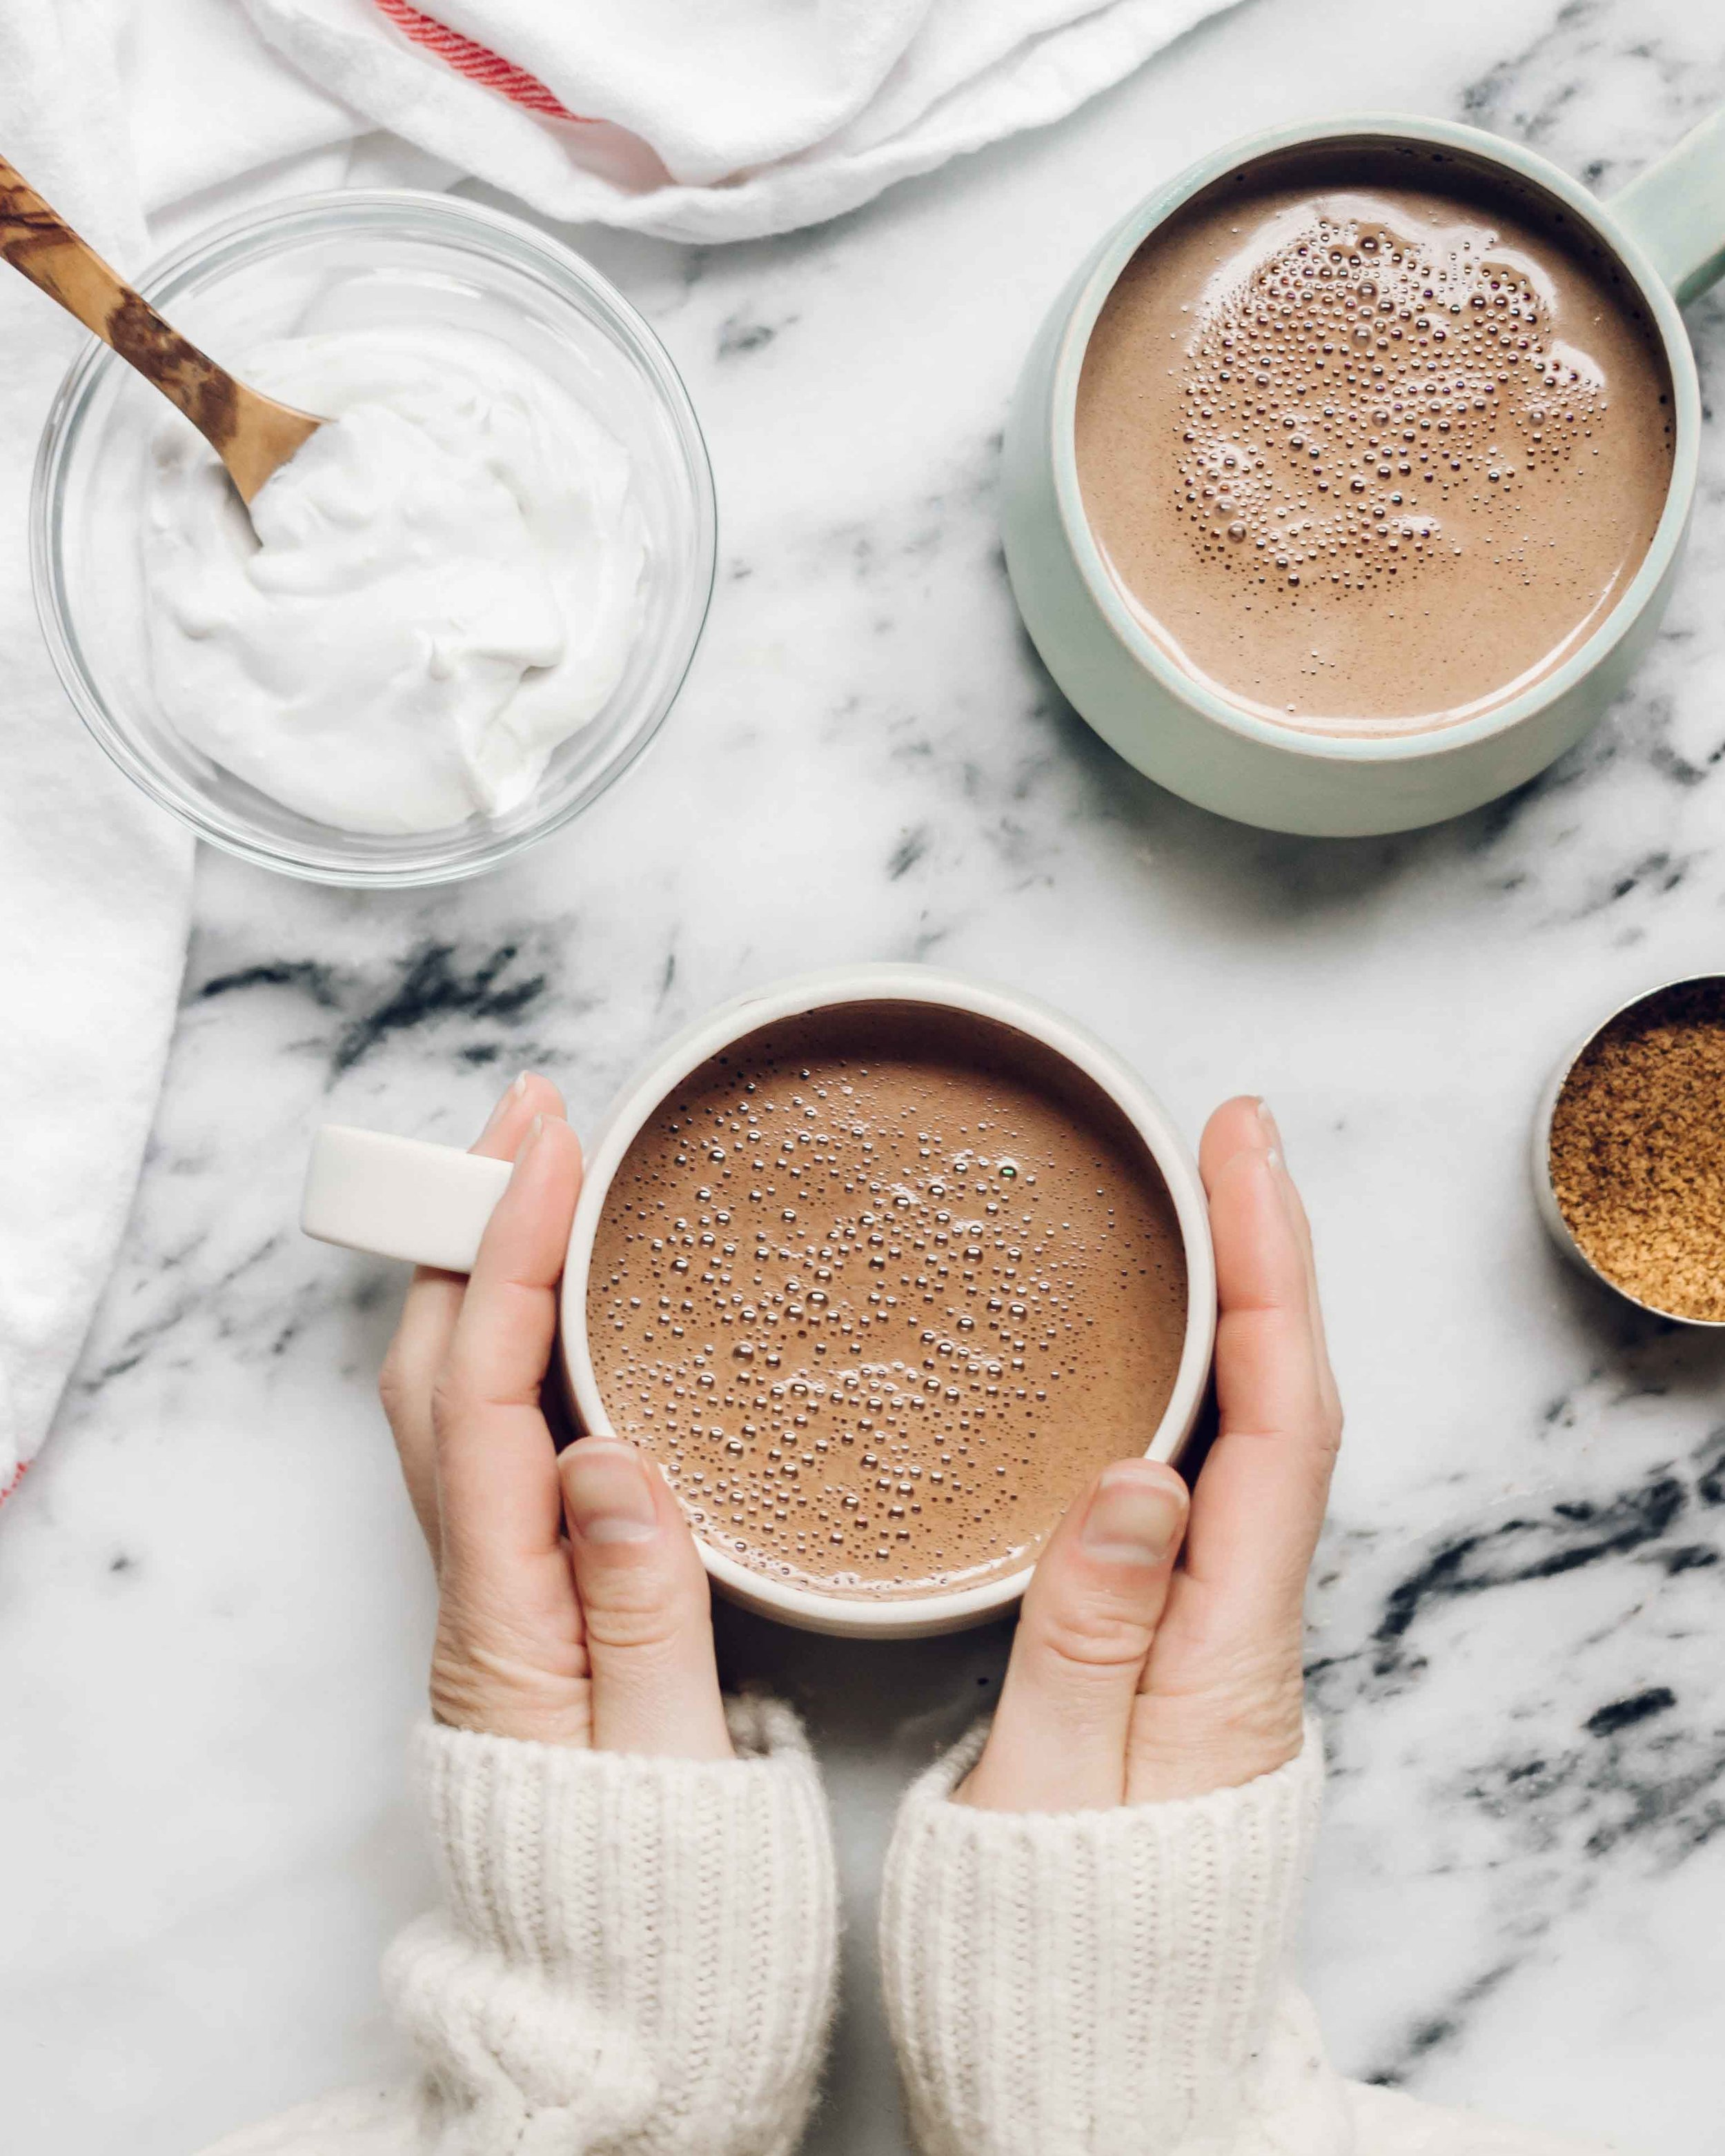 Peruvian Hot Chocolate 'Chocolatada Navideña' - This dairy free hot chocolate is a decadent traditional drink perfect for the holidays #glutenfree #dairyfree #peru #hotchocolate #christmasrecipes